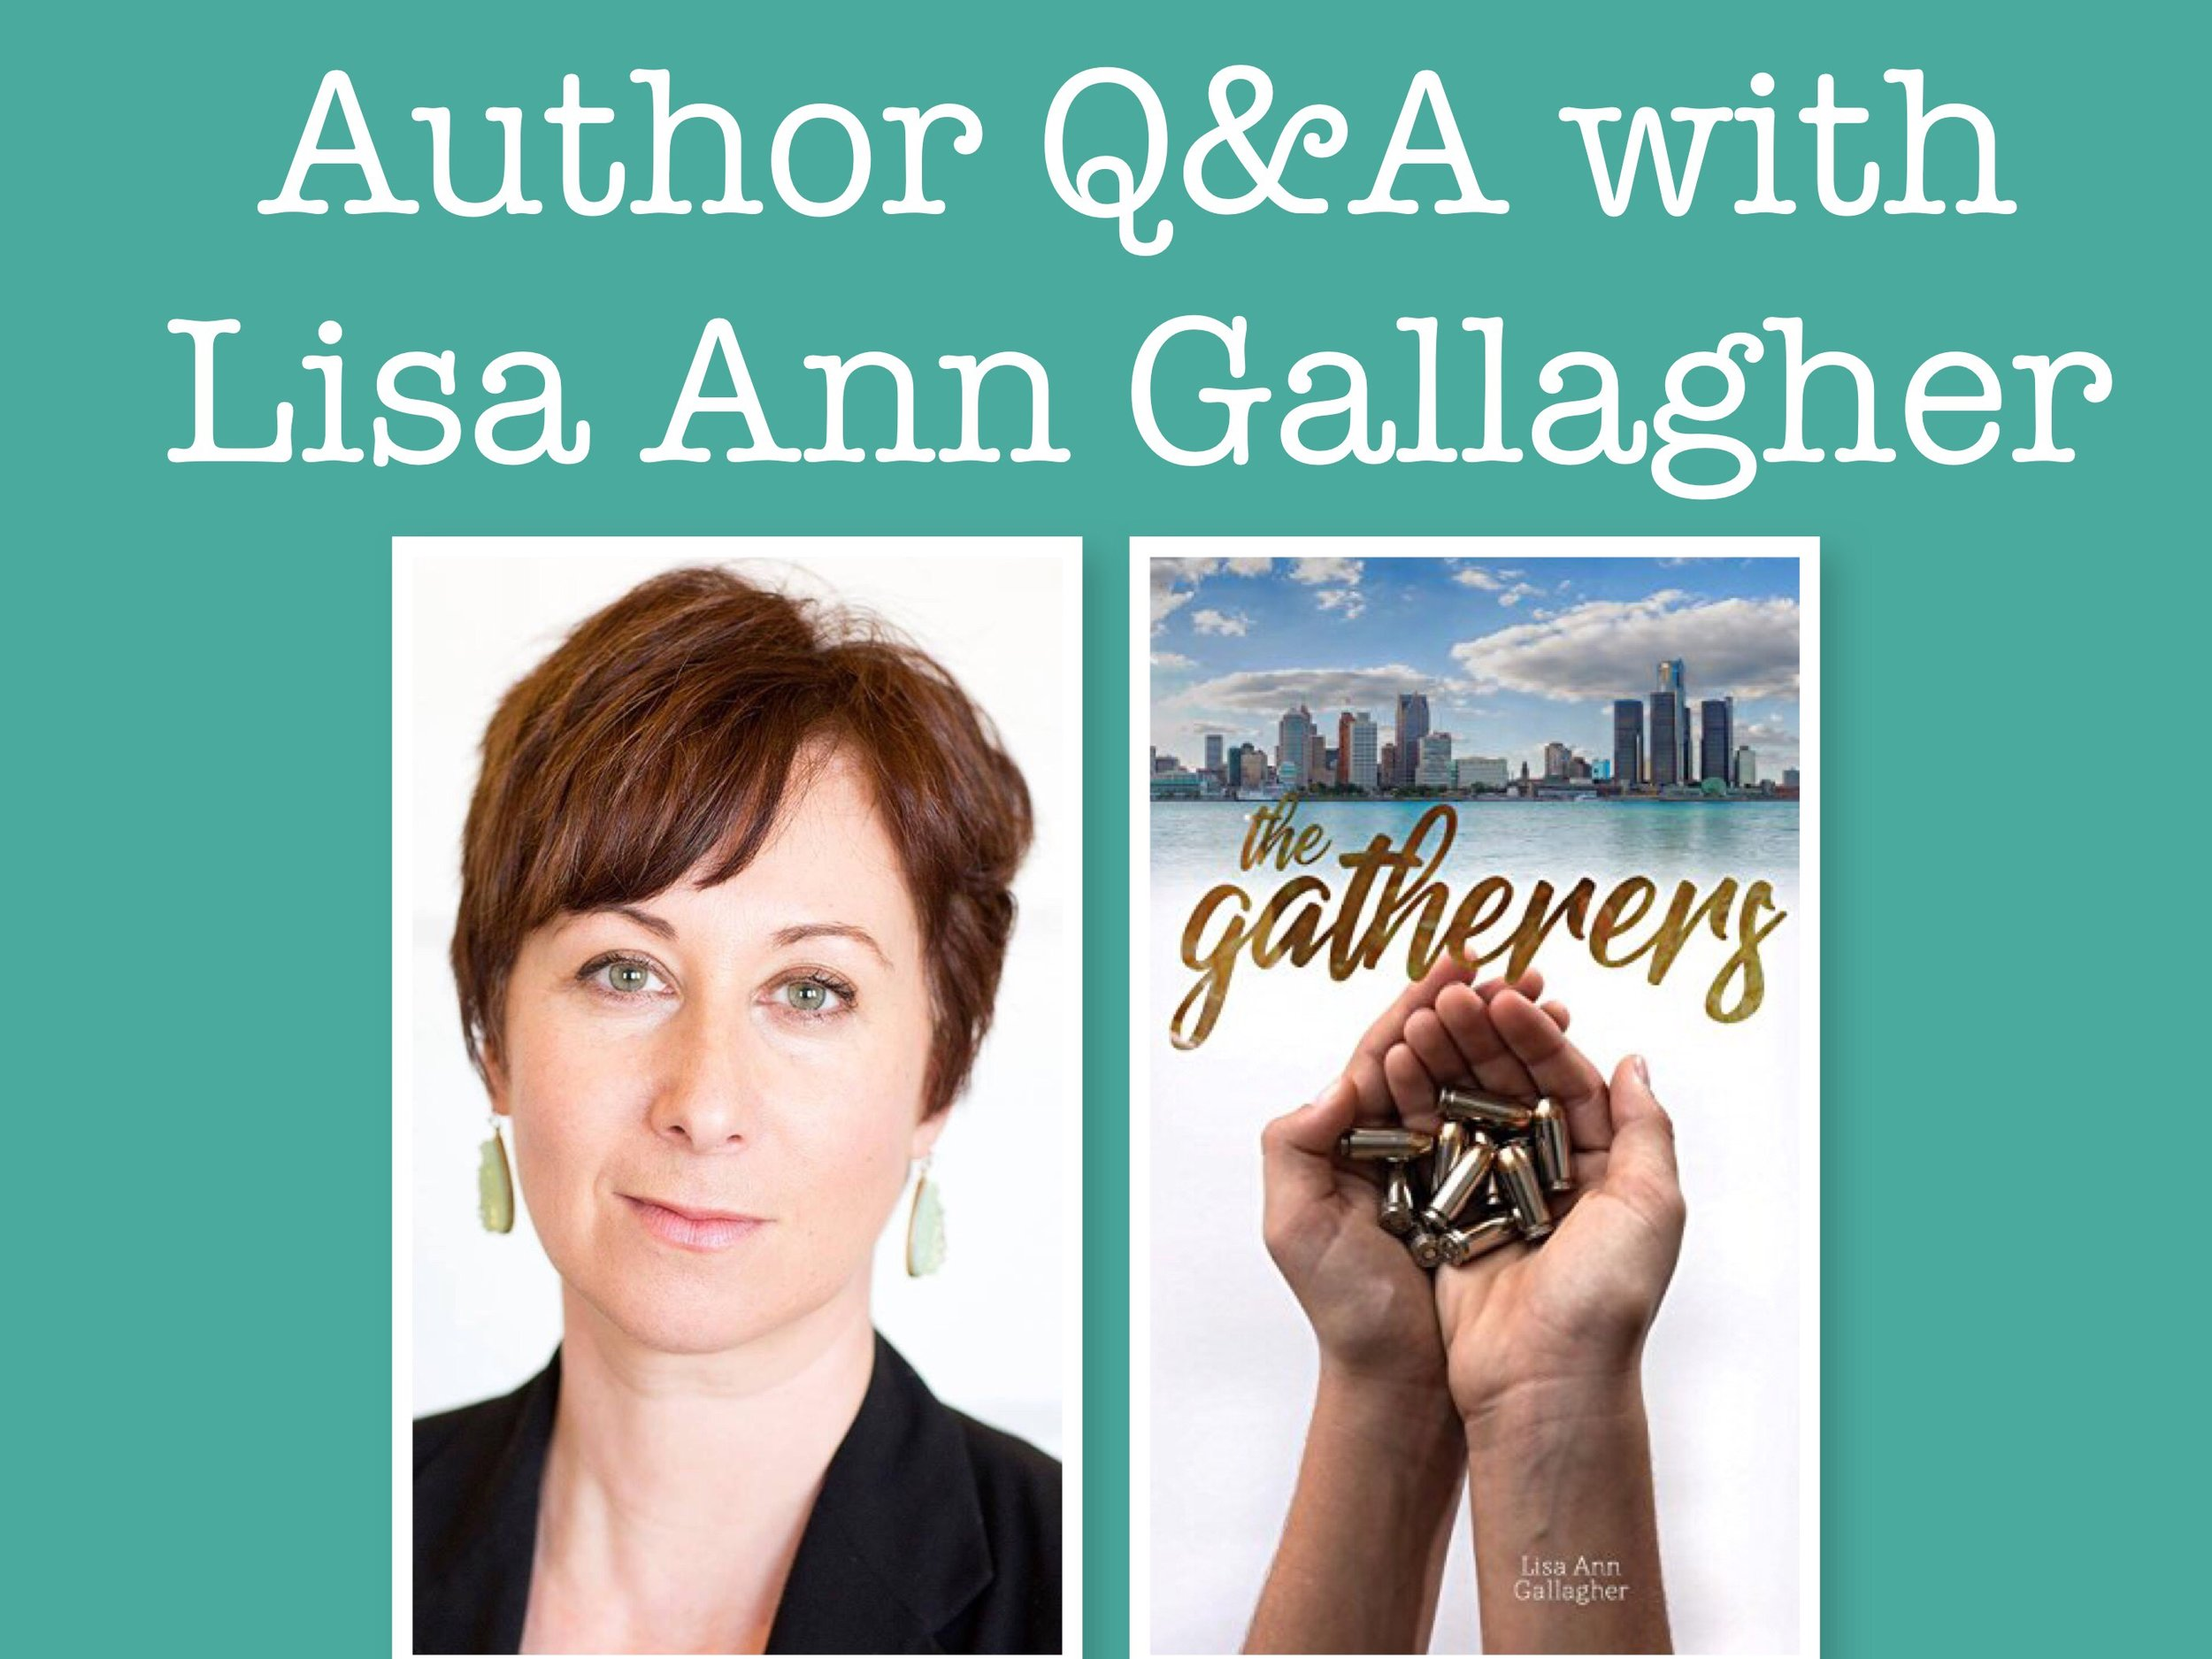 Q&A with Lisa Ann Gallagher August 15 on the blog.